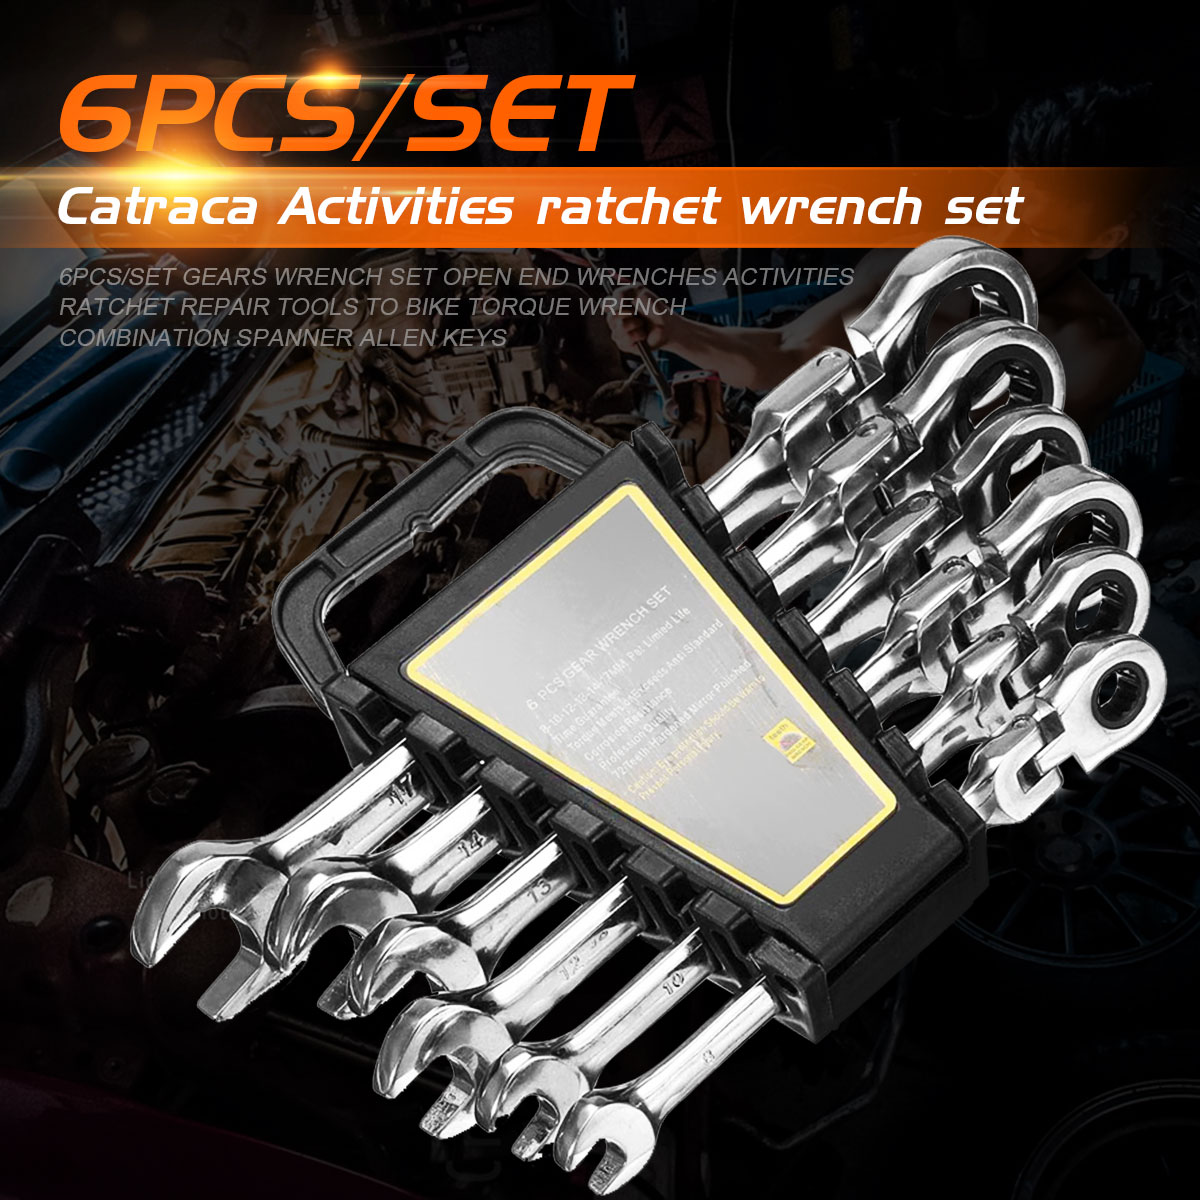 6pcs/set Gears Wrench Set Open End Wrenches Activities Ratchet Repair Tools To Bike Torque Wrench Combination Spanner Allen Keys berrylion 7pcs ratchet wrench spanner combination set 8 19mm open end torque spanner repair tools